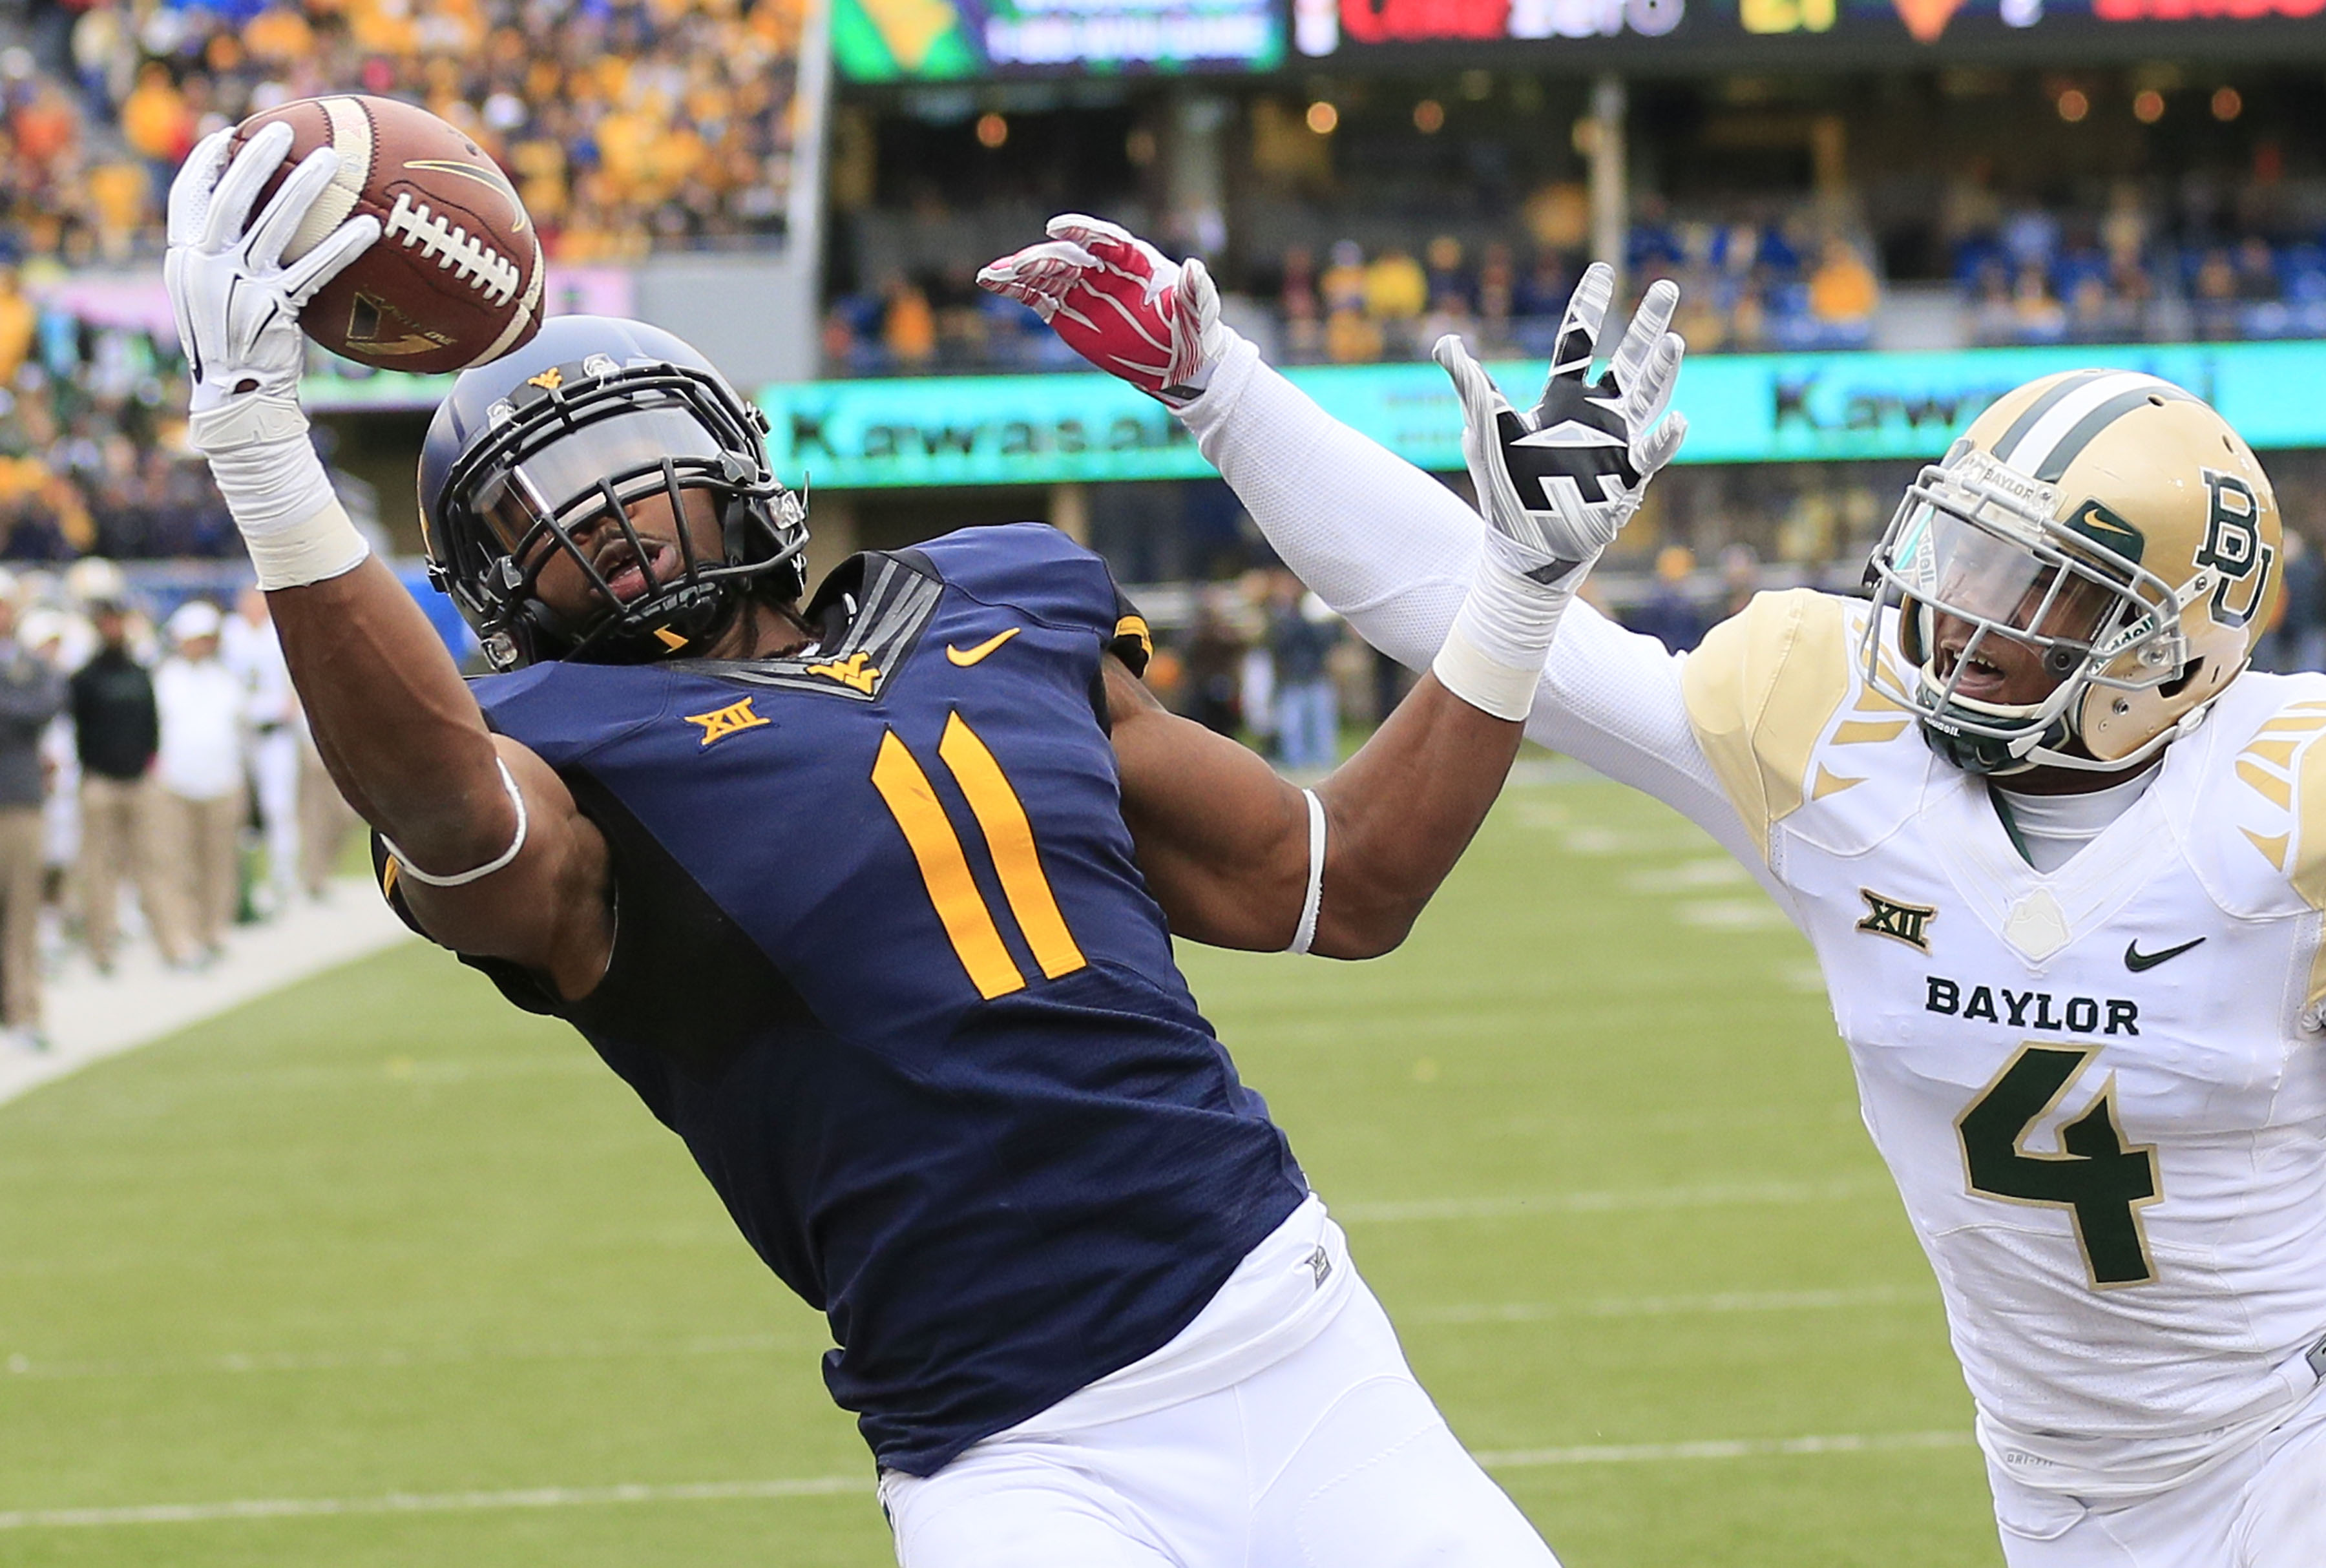 West Virginia's Kevin White (11) catches a pass for a touchdown against Baylor. (AP)